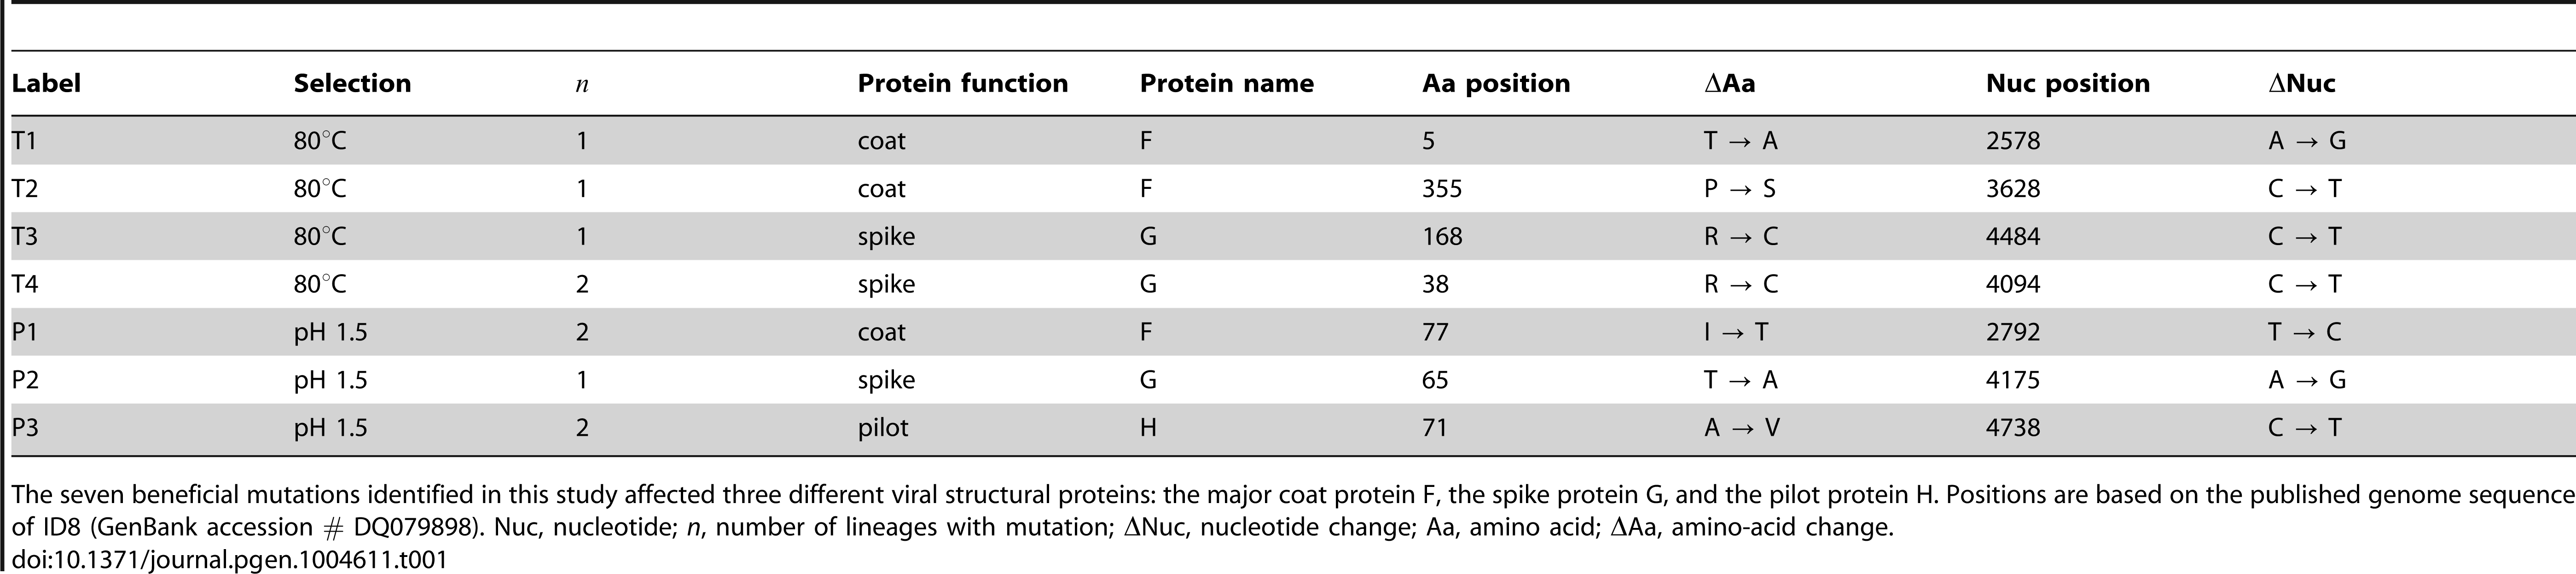 Mutations beneficial to ID8 under two selection regimes.